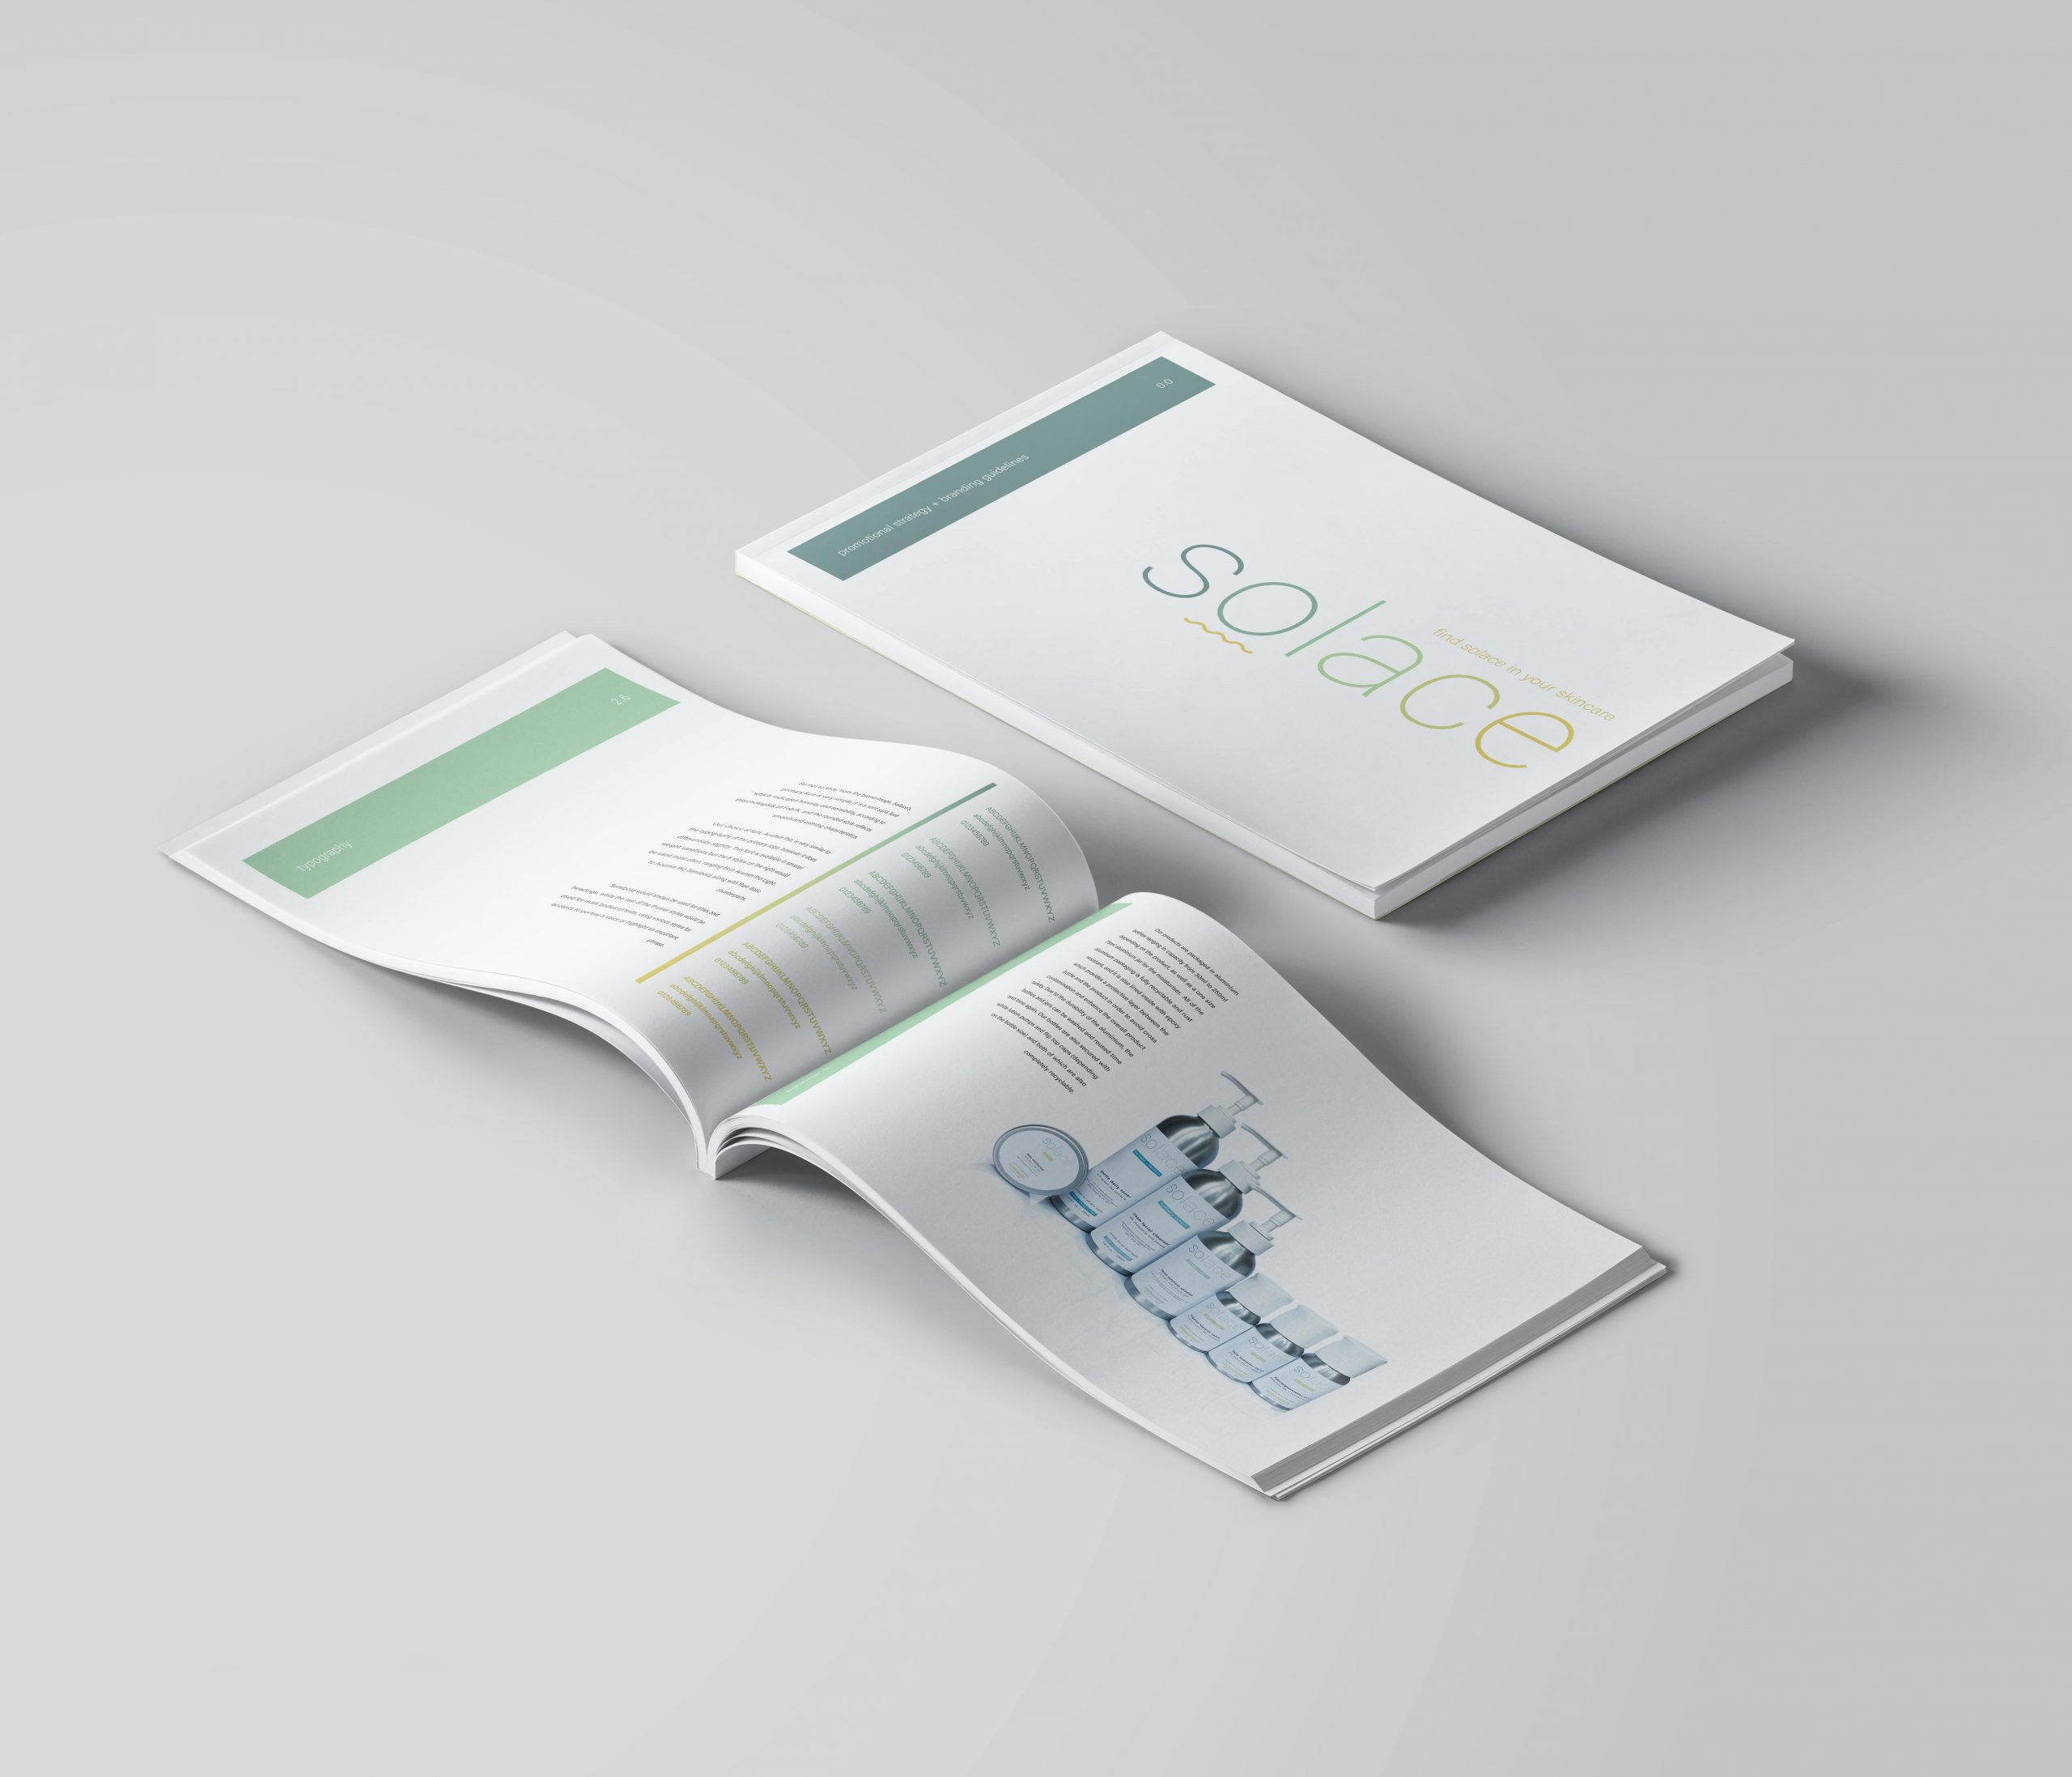 Solace Skincare Branding Guidelines & Promotional Strategy